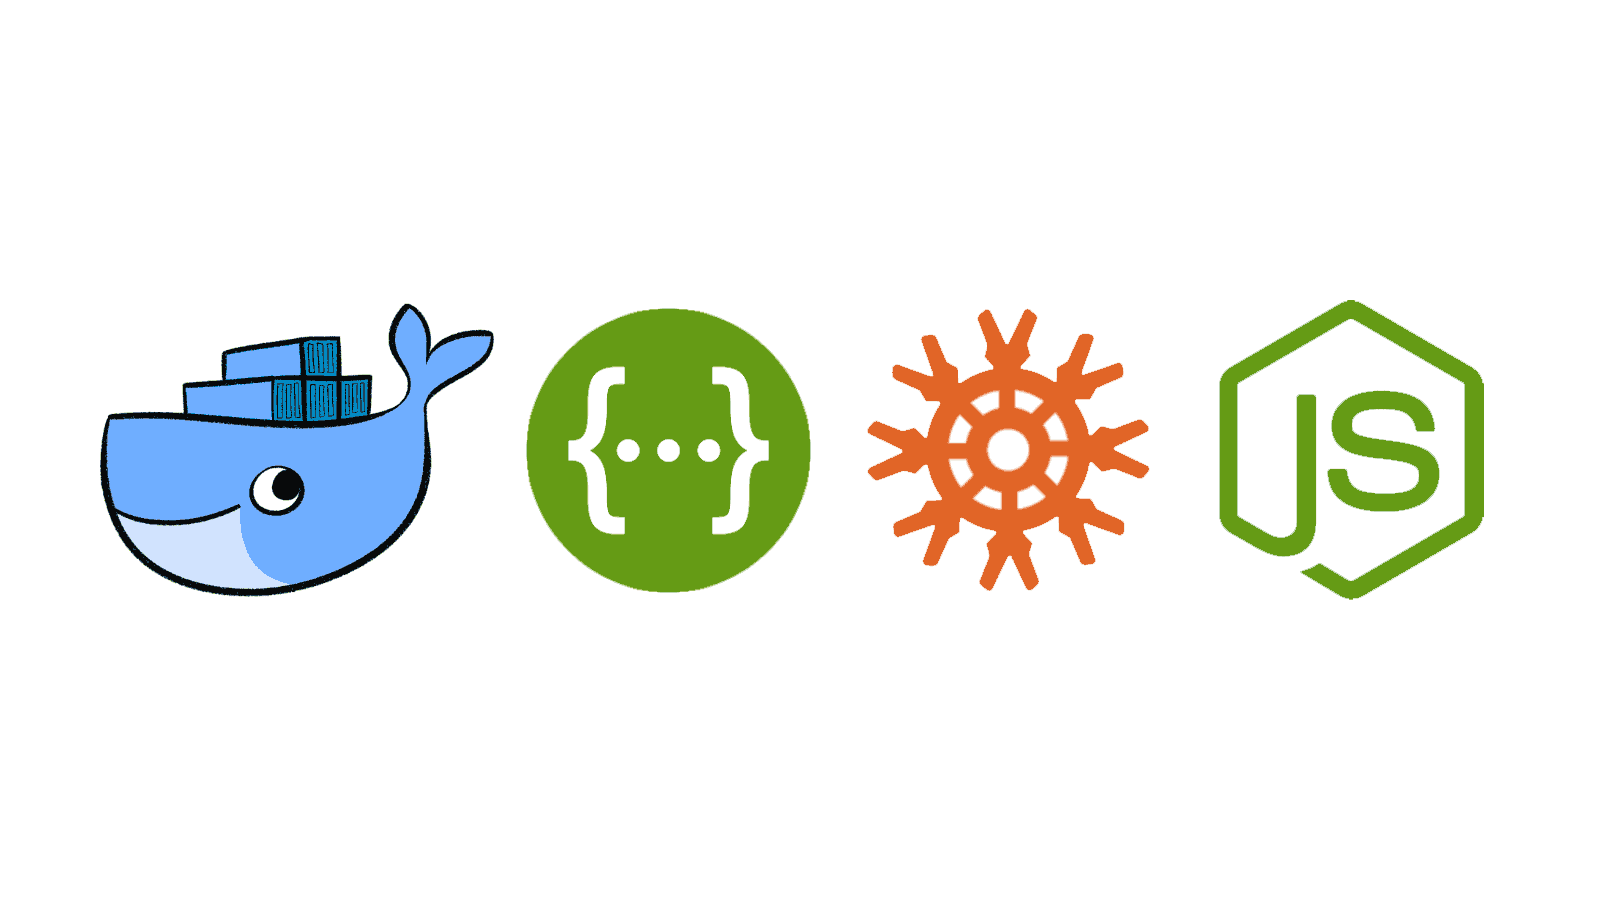 Microservices 101 (and building one using Docker, Swagger, Knex and